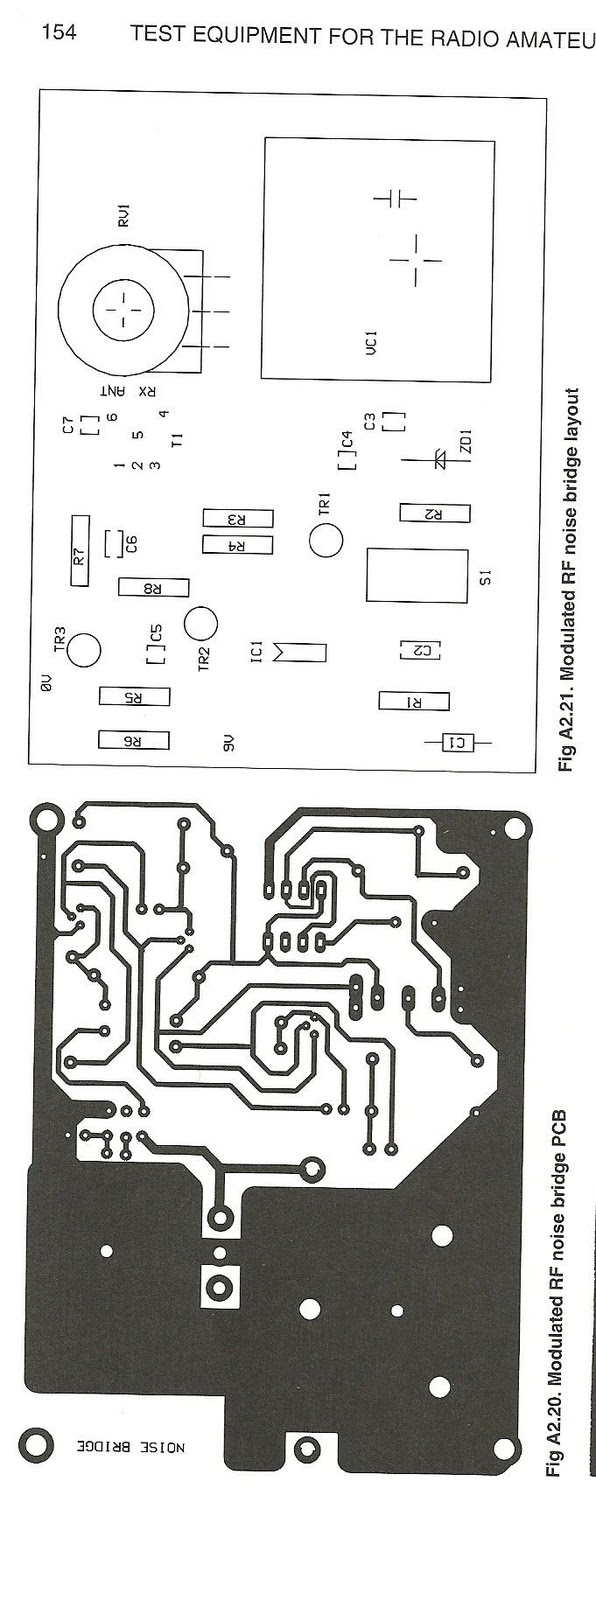 Antenna Noise Bridge Shortwave Listener Site Zs1jhg Schematic Diagram Of Wien Oscillator Circuitjpg For Those Who Like To Homebrew And Need Detailed Build Instructions As I Do Have Attached A From Test Equipment By Clive Smith G4fzh Using